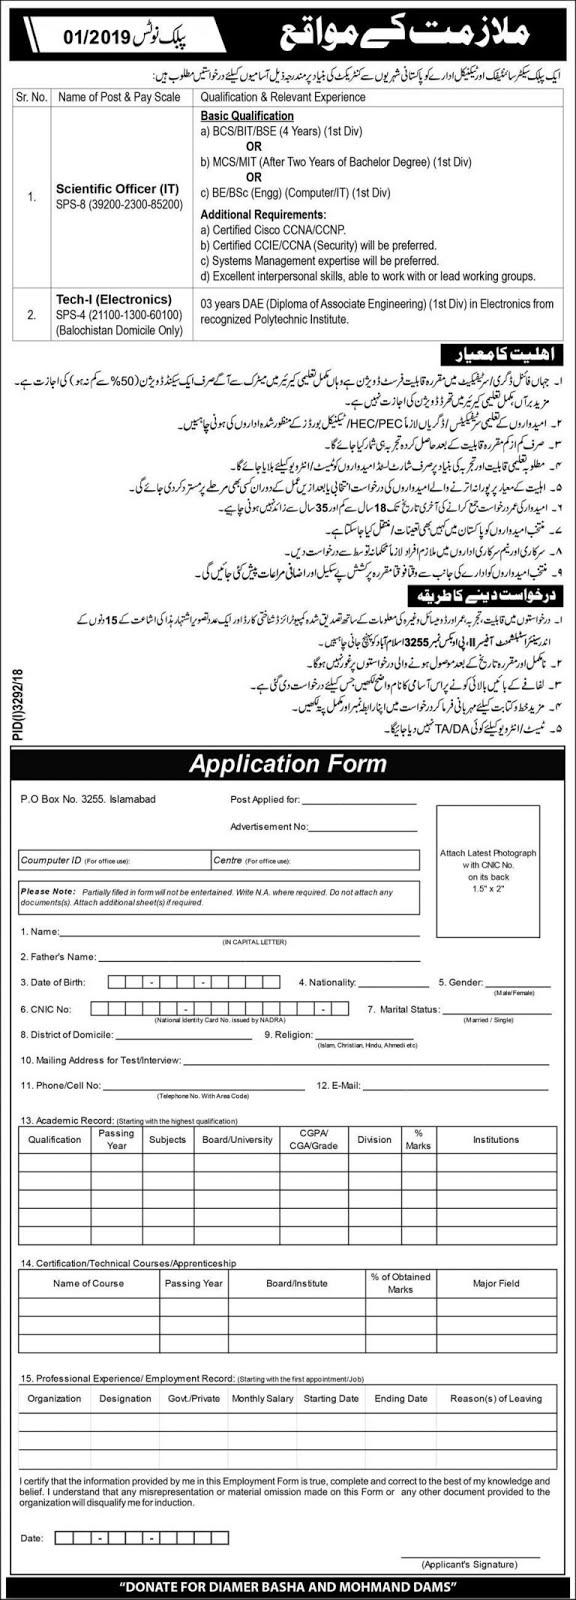 Pakistan Atomic Energy Commission PAEC Jobs Po Box 3255 Islamabad